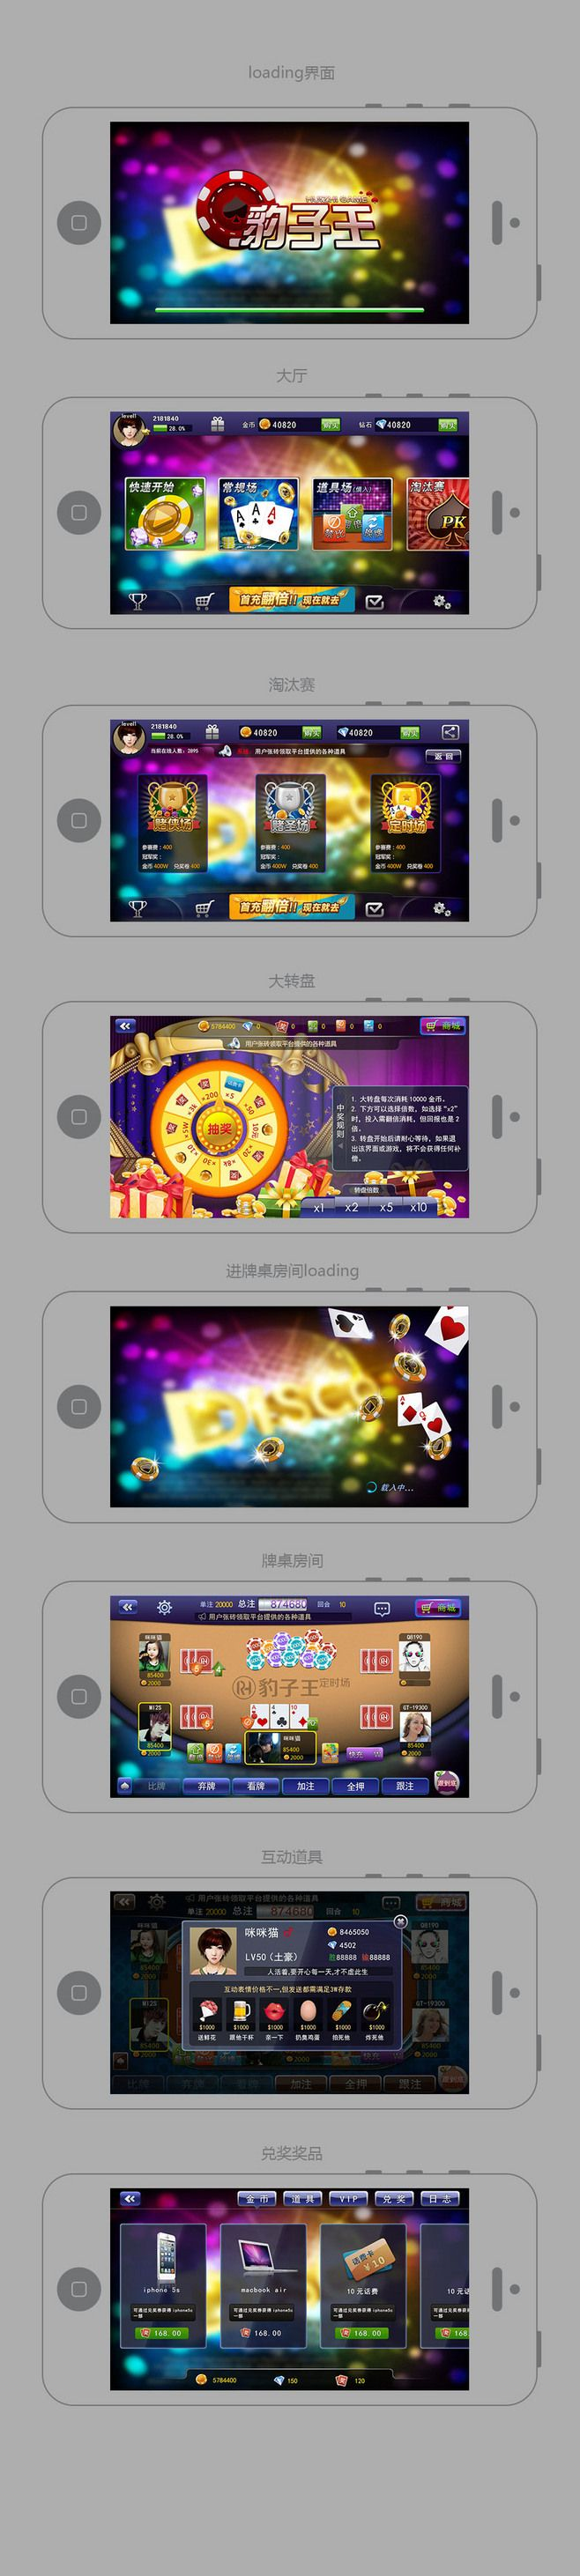 1108 best game ui images on pinterest game design game ios